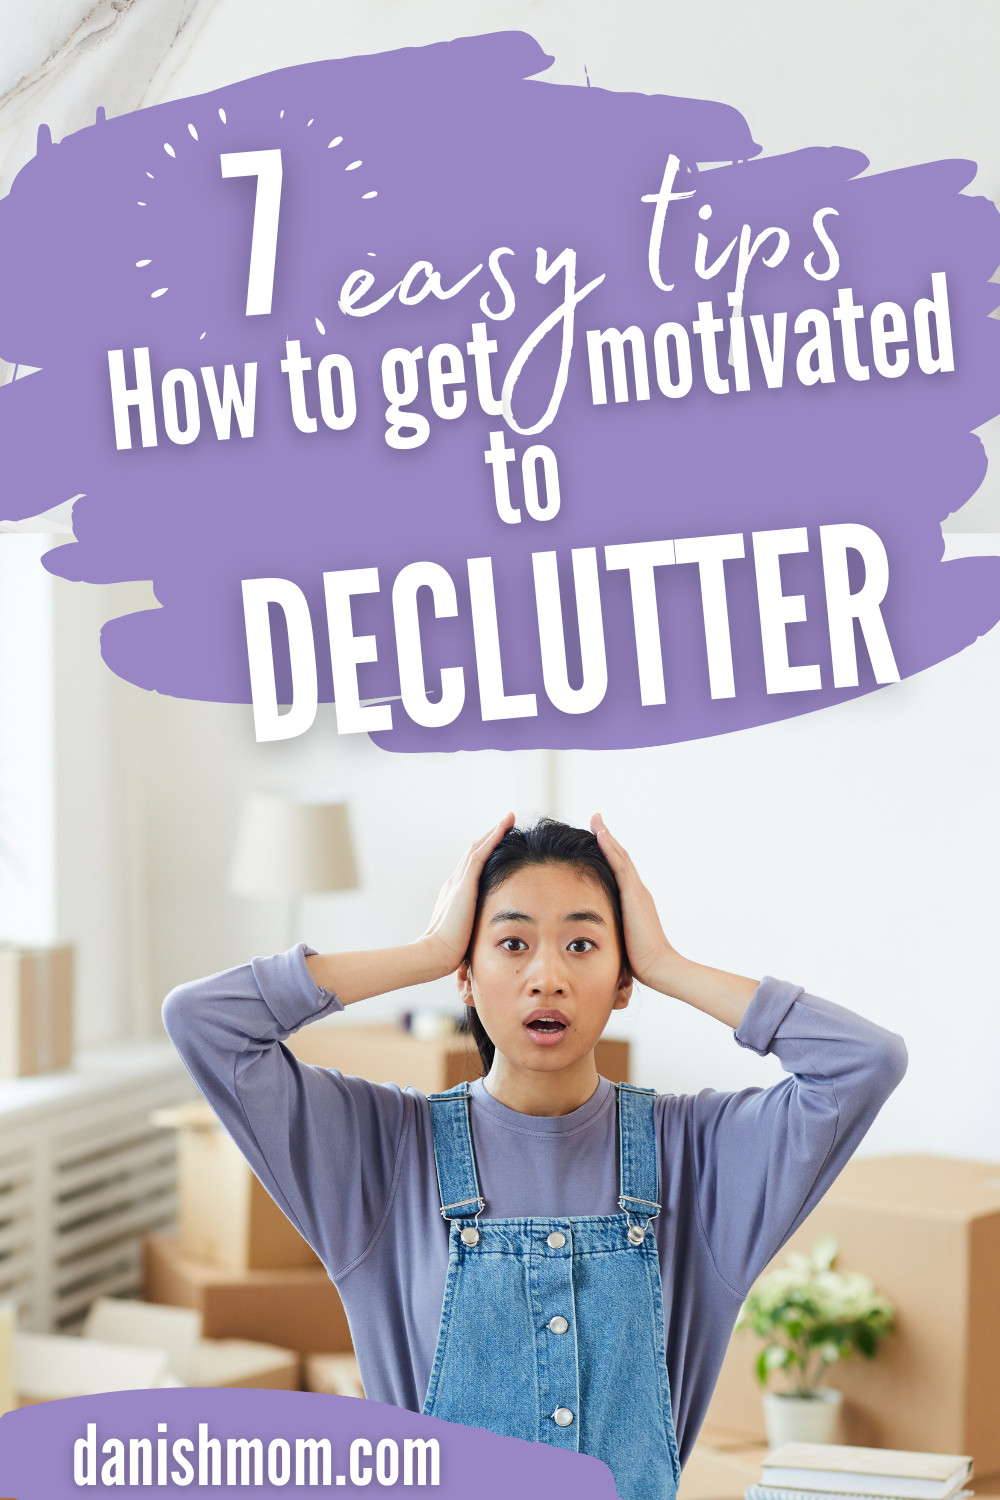 Decluttering tips clutter free home. Declutter tips. Find motivation to declutter. Motivation to declutter tips. Declutter your home. Declutter and organize. Decluttering ideas feeling overwhelmed. Declutter motivation inspiration. How to declutter your home. Motivate yourself to clean.